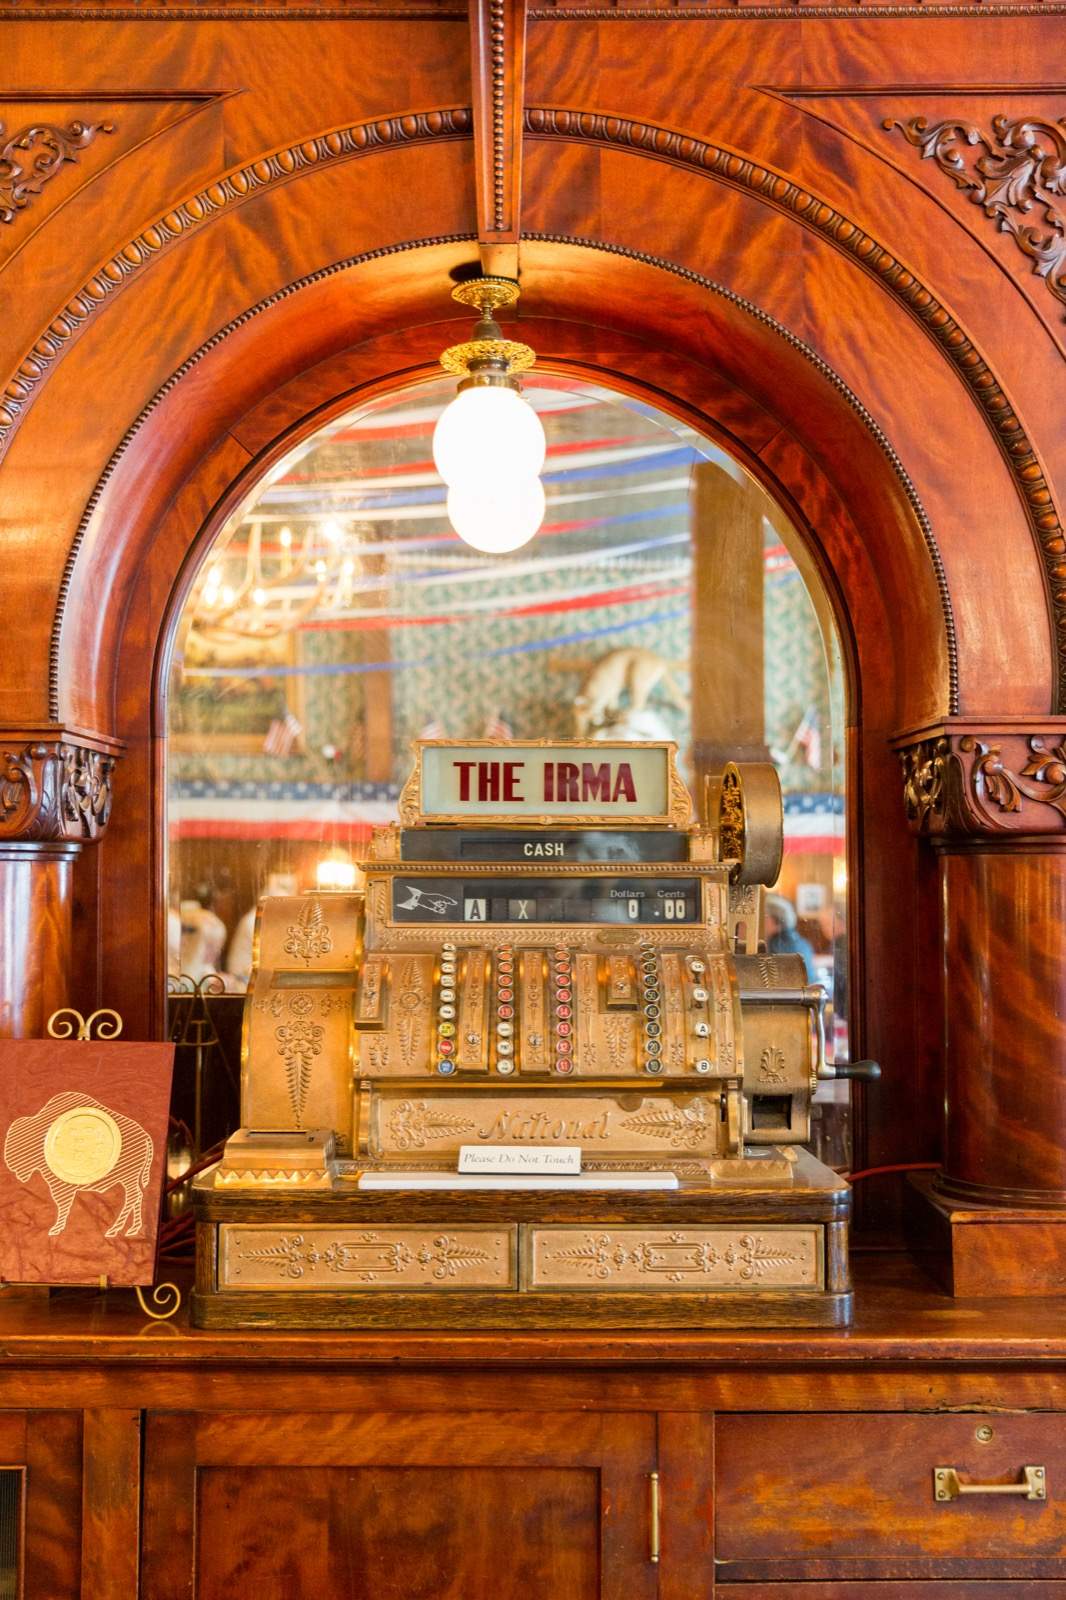 A cash register at the Irma Hotel